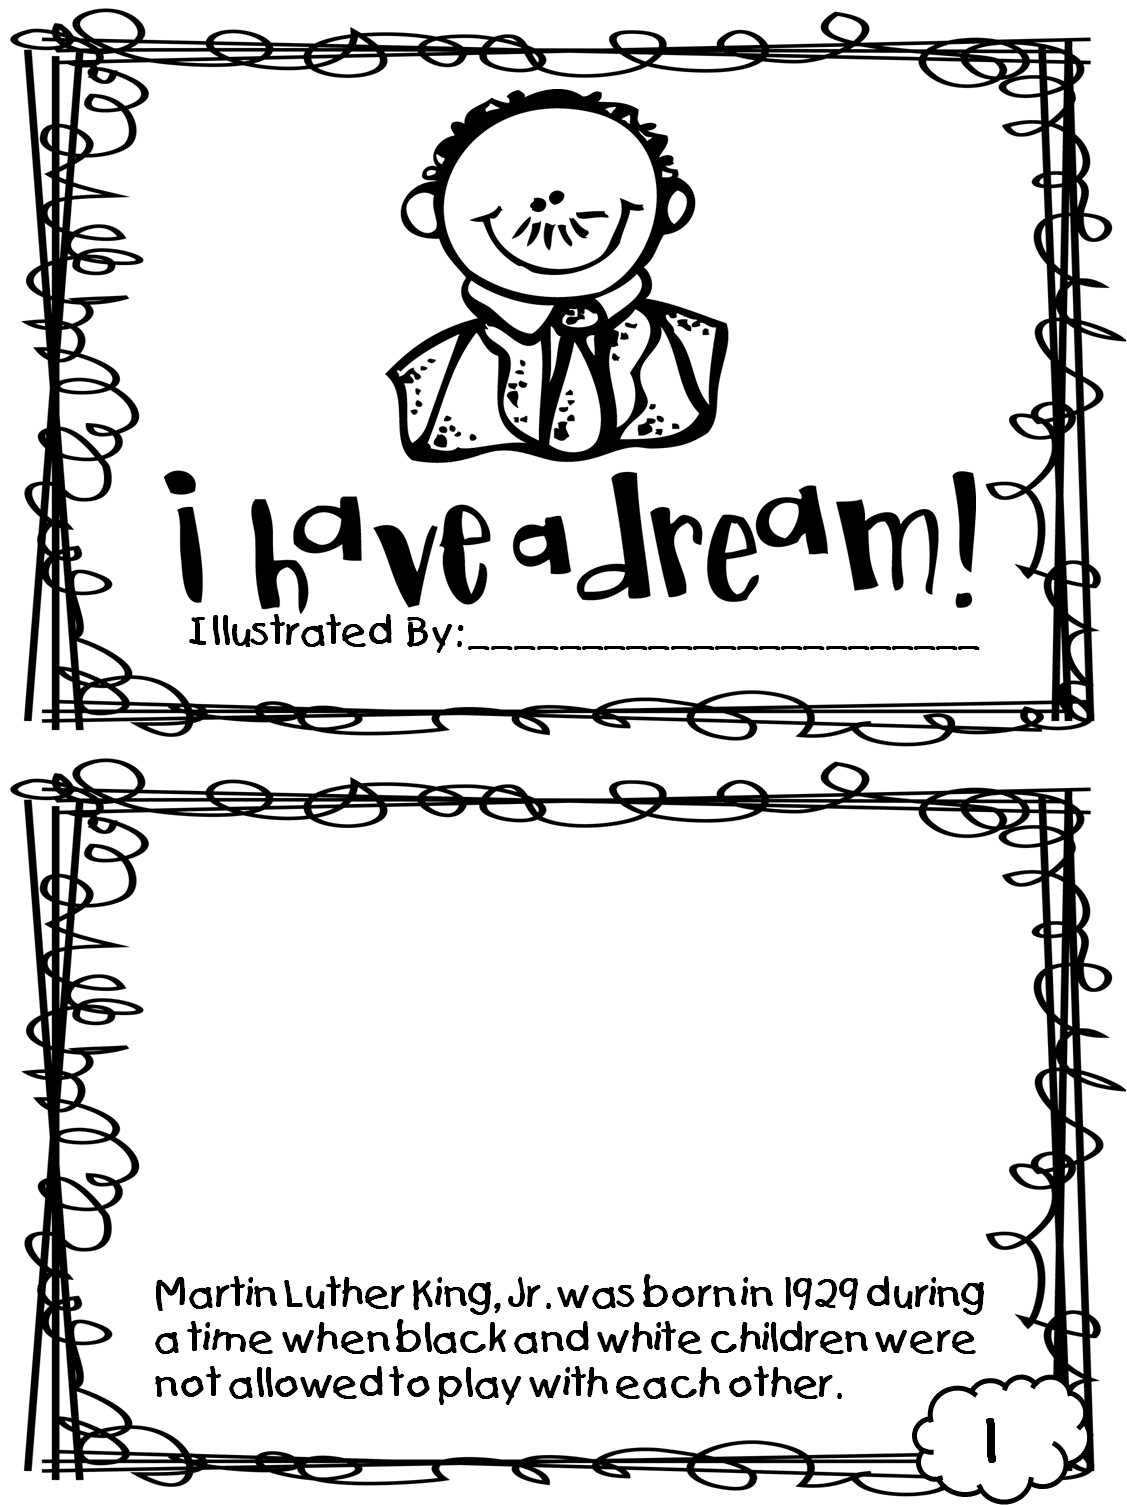 martin luther king jr day worksheets resultinfos. Black Bedroom Furniture Sets. Home Design Ideas